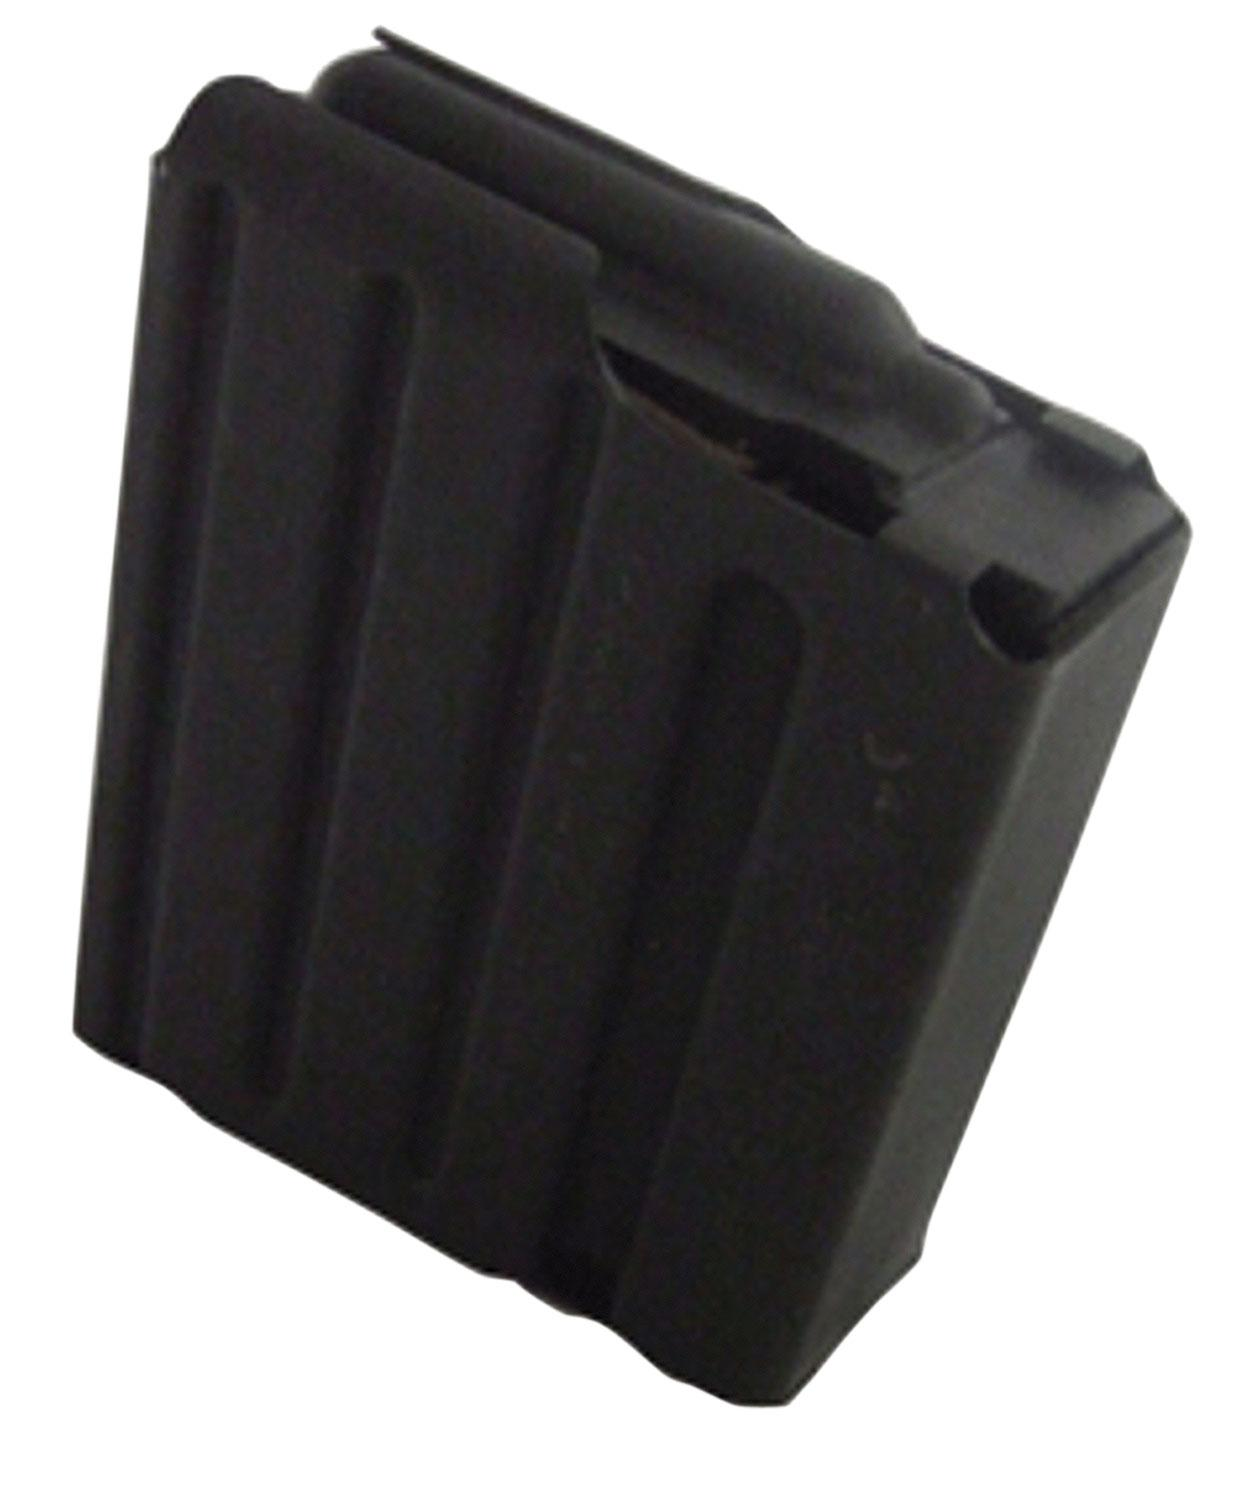 308win Ar- 10 4rnd Magazine